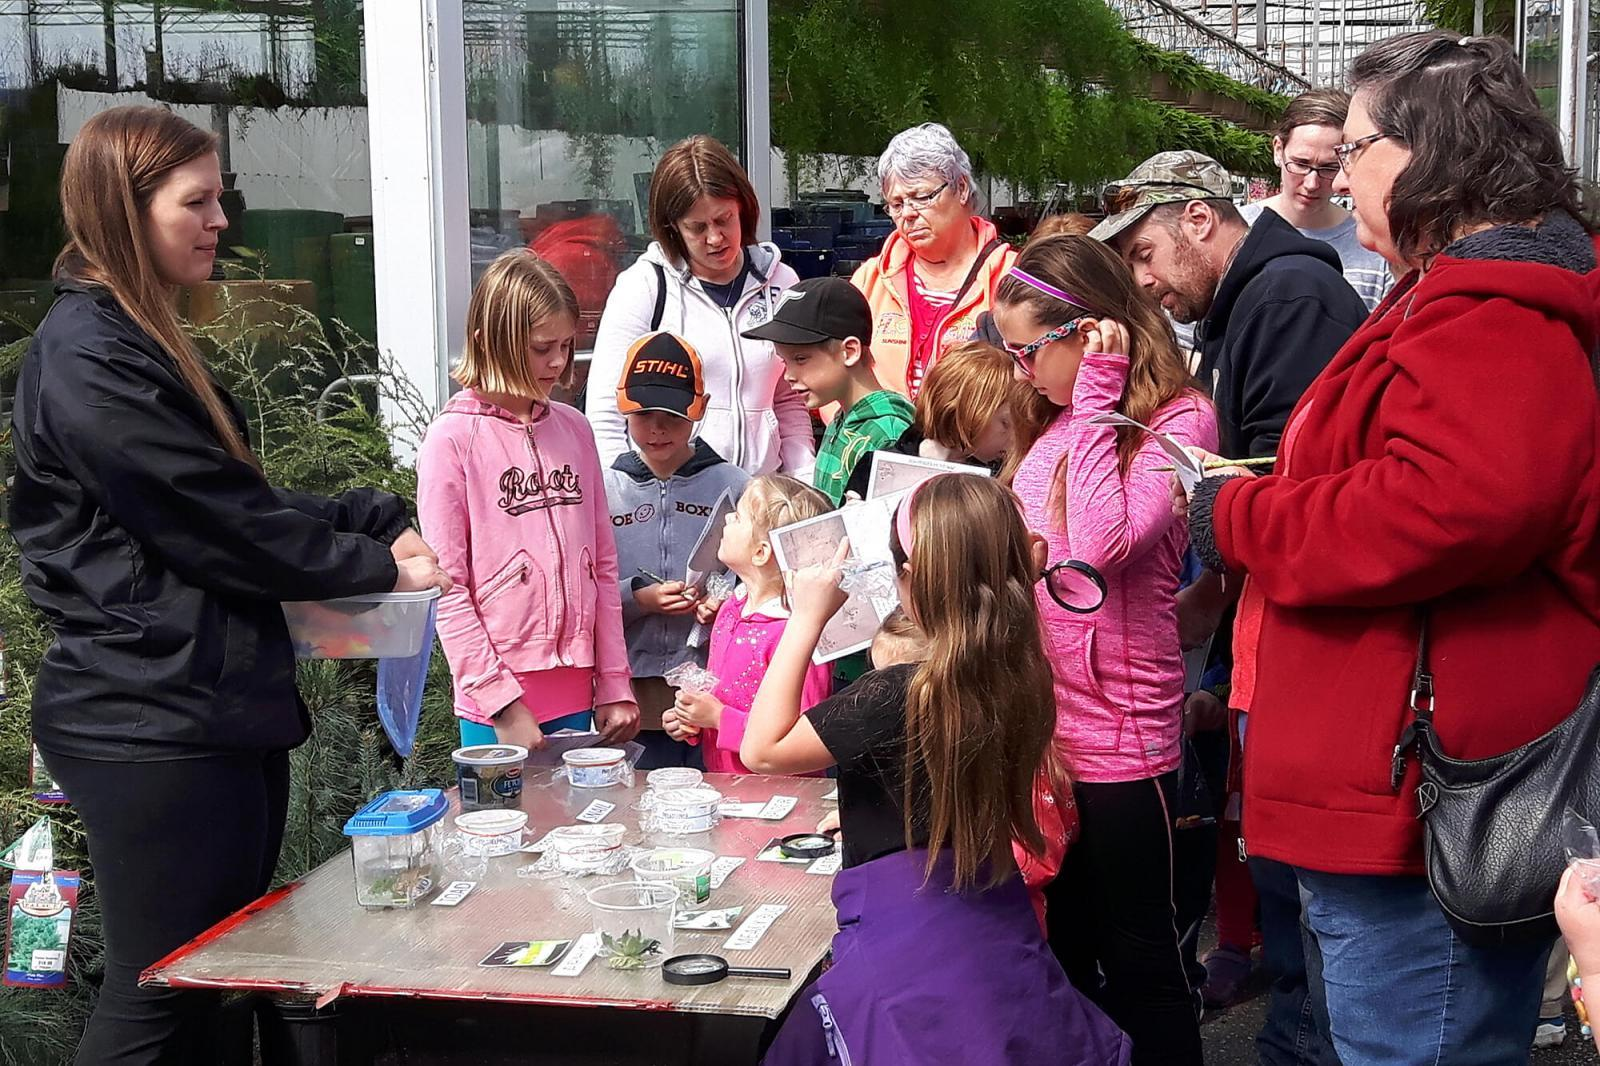 One of the many stations set up at Sipkens garden centre to educate and inspire young gardeners.